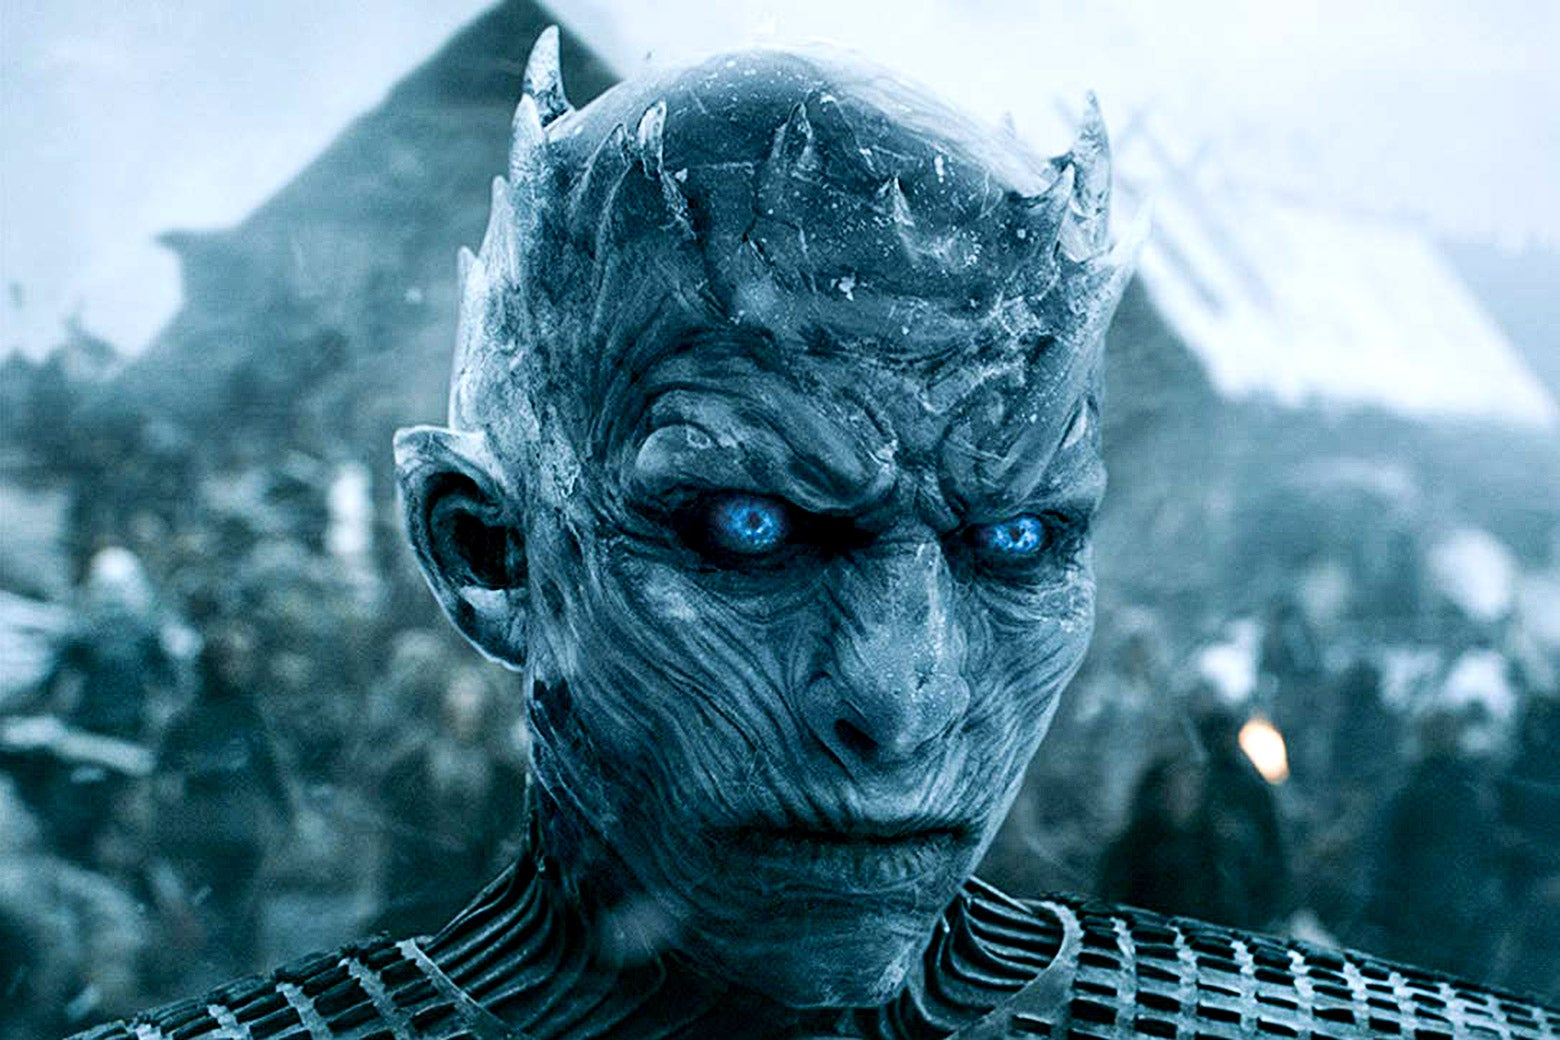 Game of Thrones' Night King